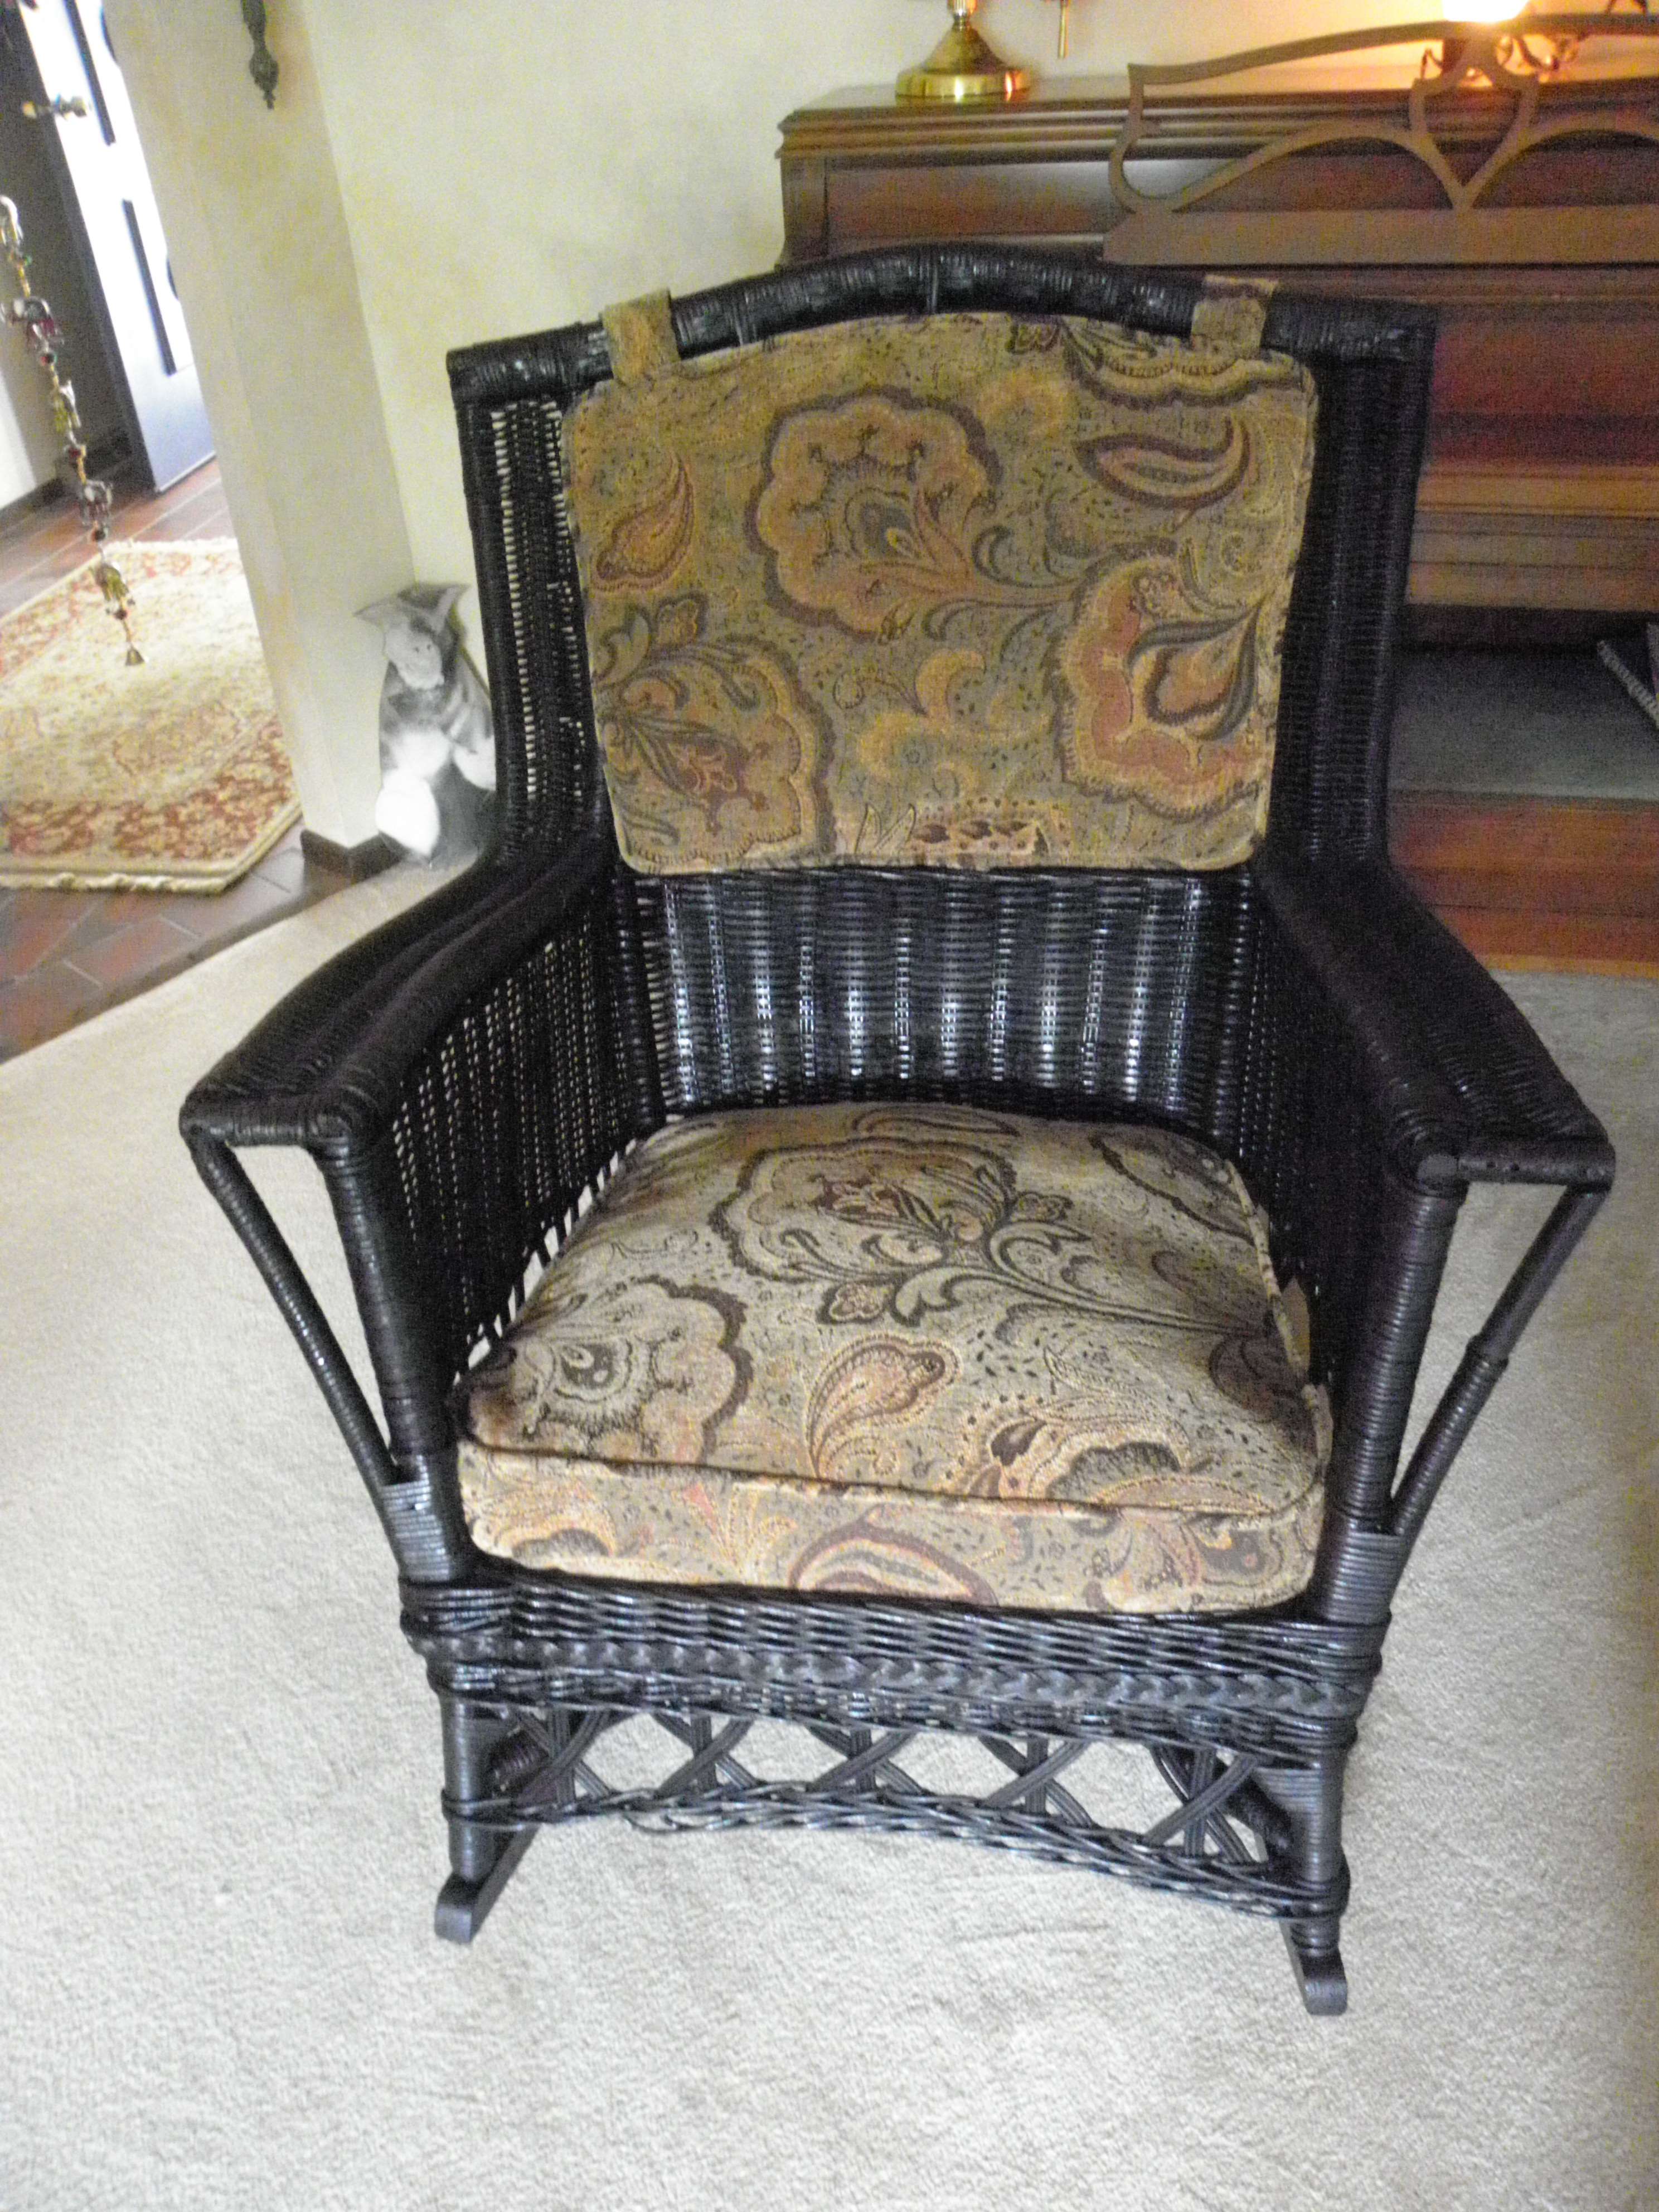 Luxury Vintage Wicker Rocking Chair In Home Remodel Ideas With Inside Most Up To Date Vintage Wicker Rocking Chairs (View 3 of 15)